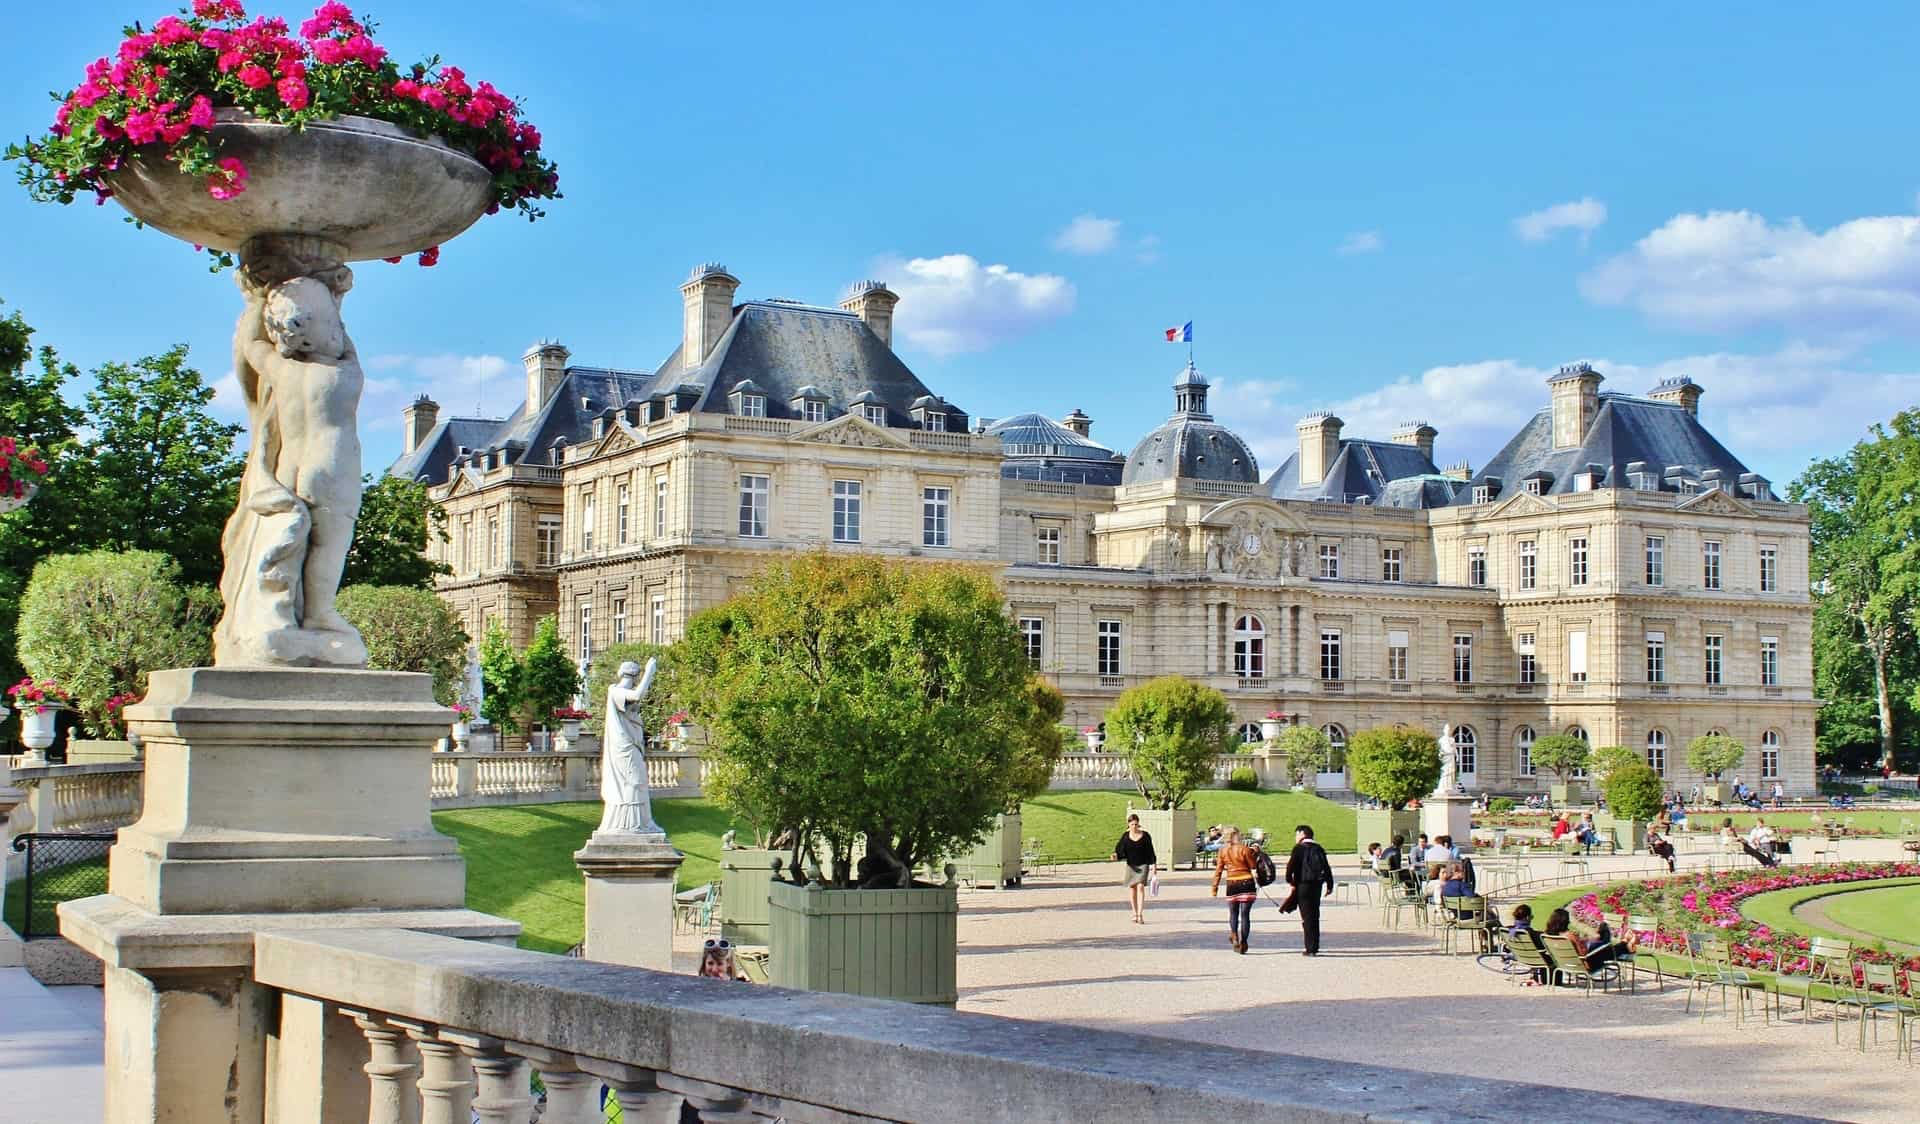 The Gardens of Luxembourg in Paris